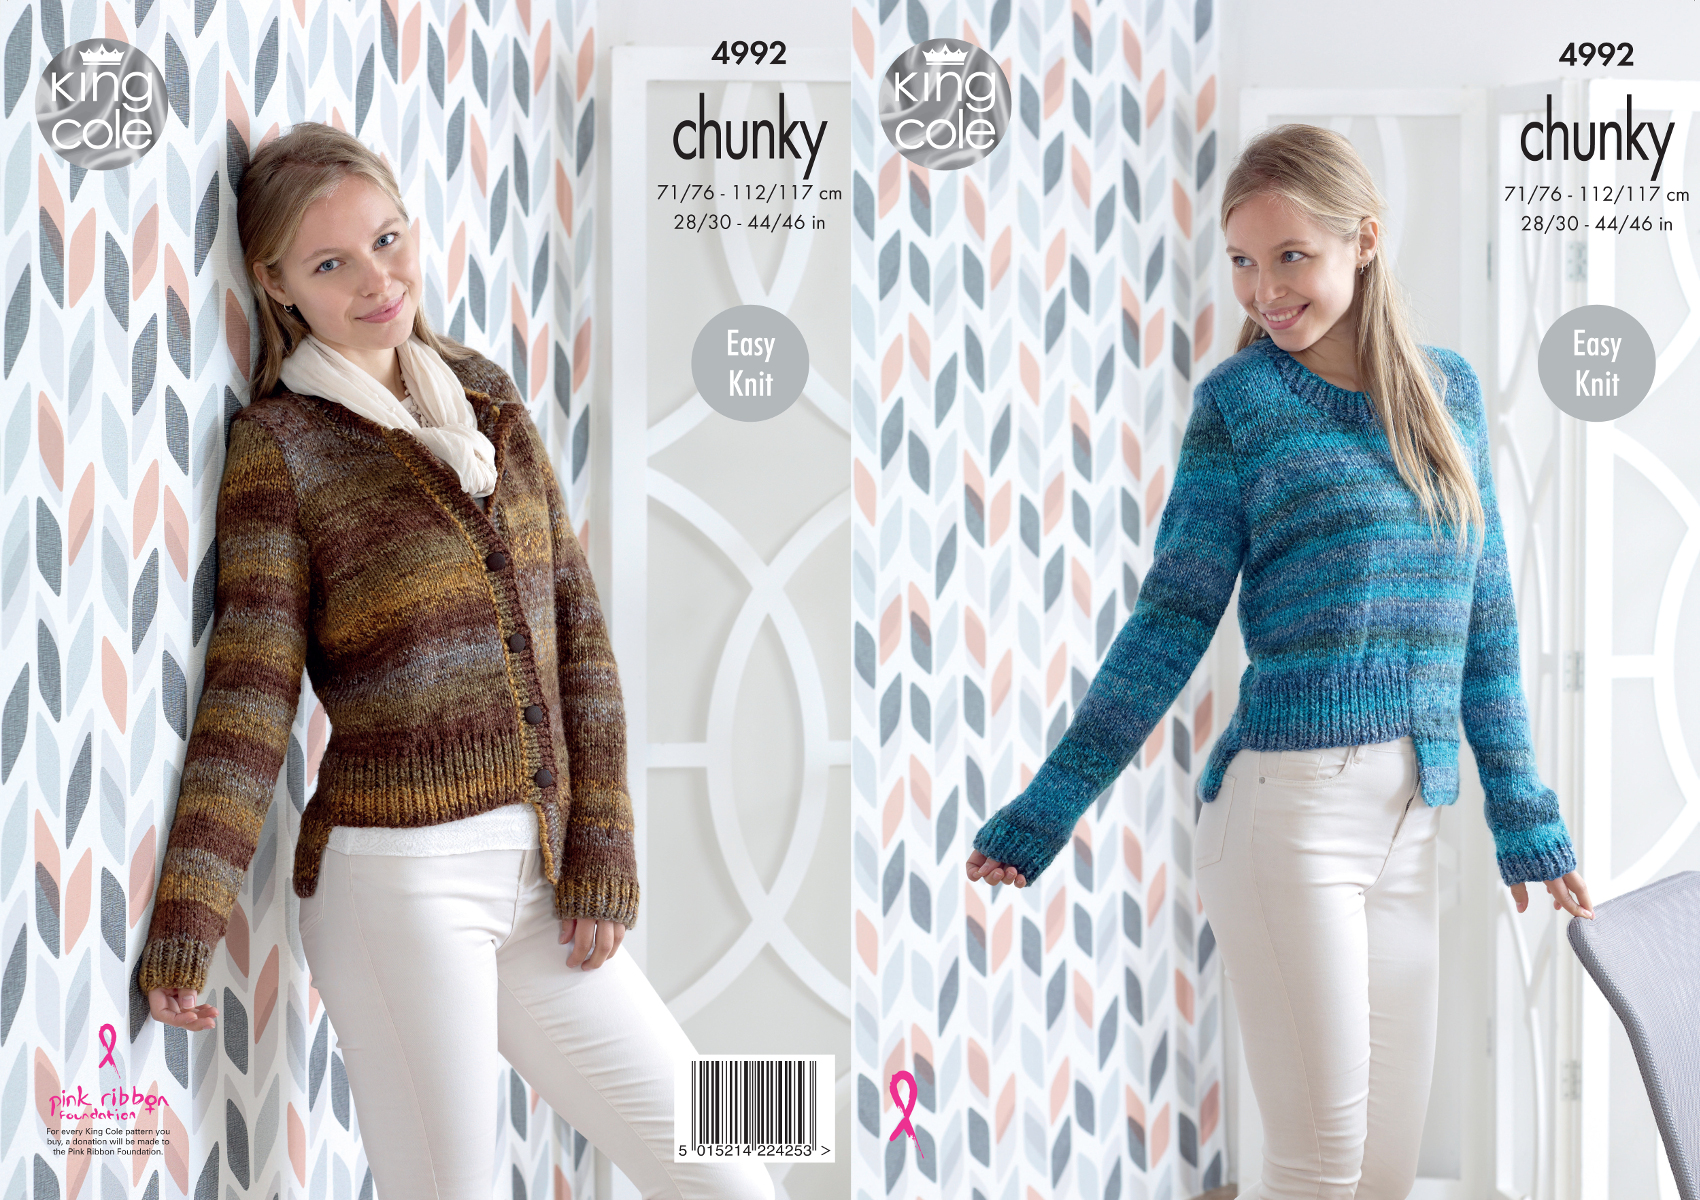 King Cole Ladies Chunky Knitting Pattern Womens Easy Knit Jumper